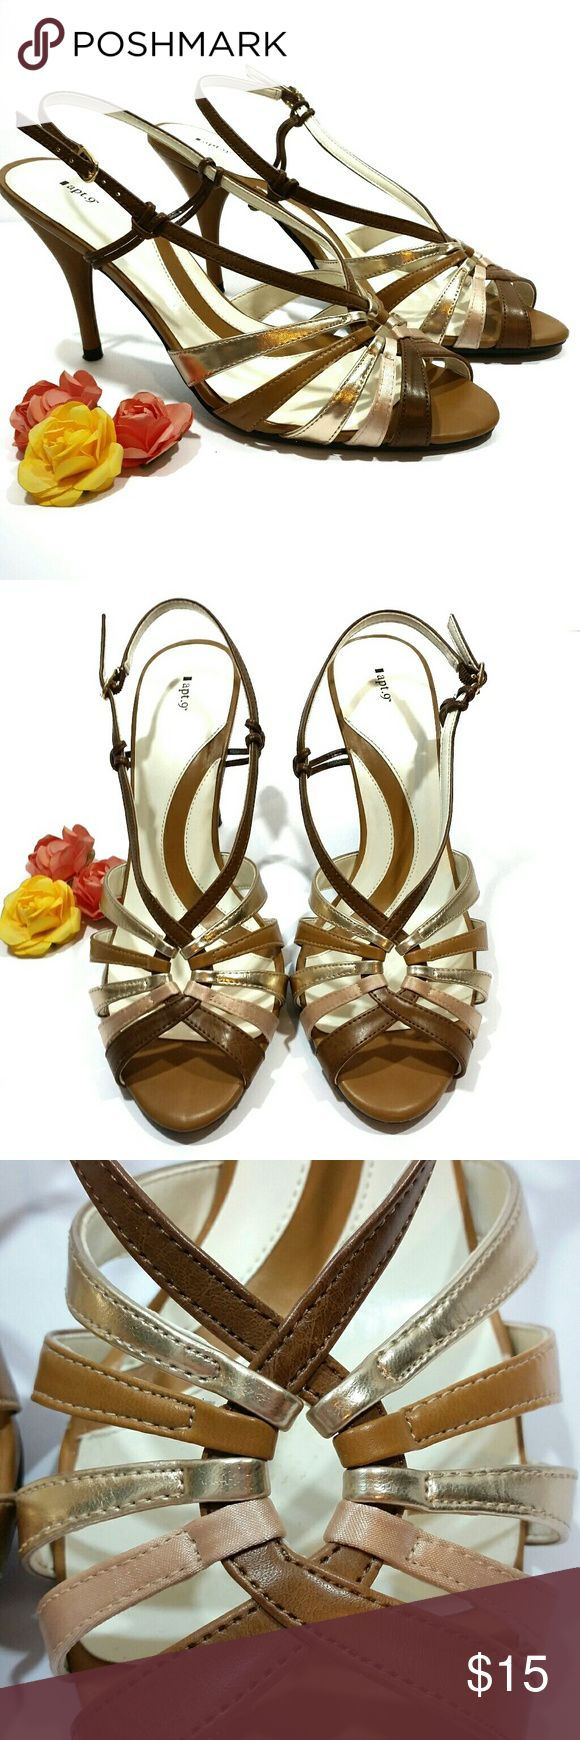 """Apt. 9 multi color heeled sandal These heeled sandals are a size 10. The heel is approx 3"""". The colors are tan, brown, cream, and pewter. Please see last 2 pics for minor flaws: scratch on top of strap, and light stain in the bottom of the shoe. Apt. 9 Shoes Heels"""